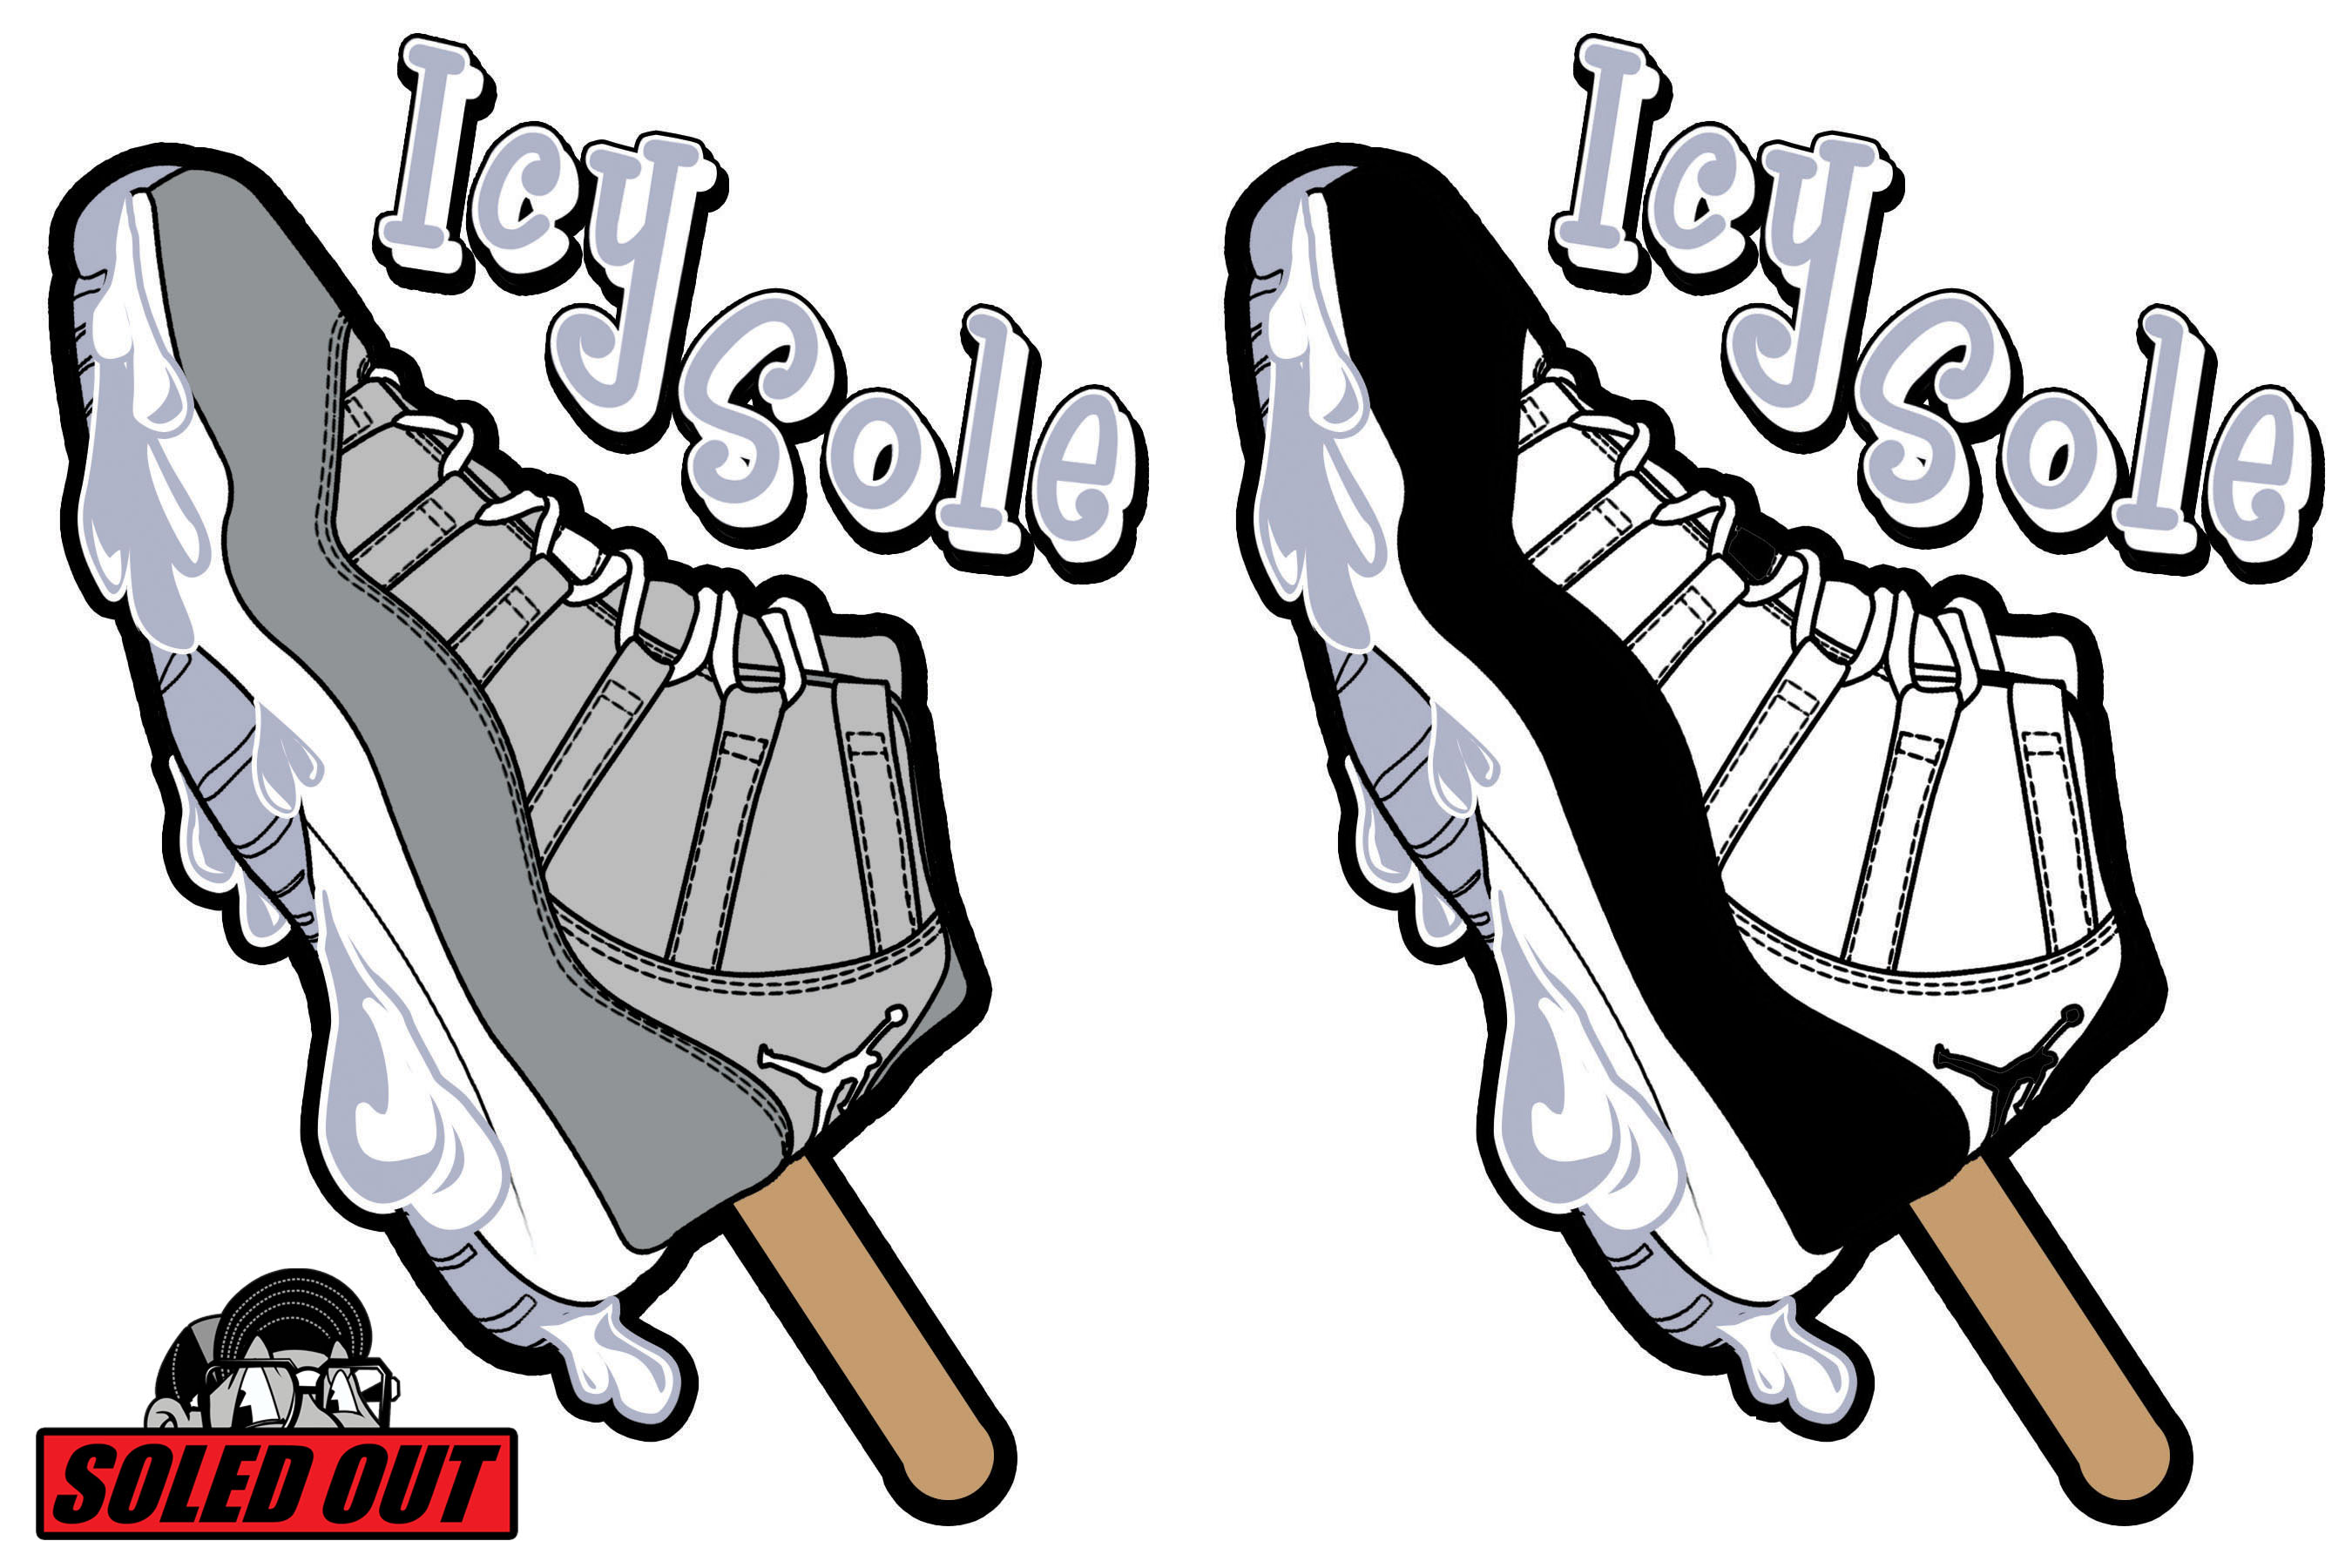 2700x1800 Icy Sole Collections Jordan 11 Cool Gray Amp Concord Soled Out!